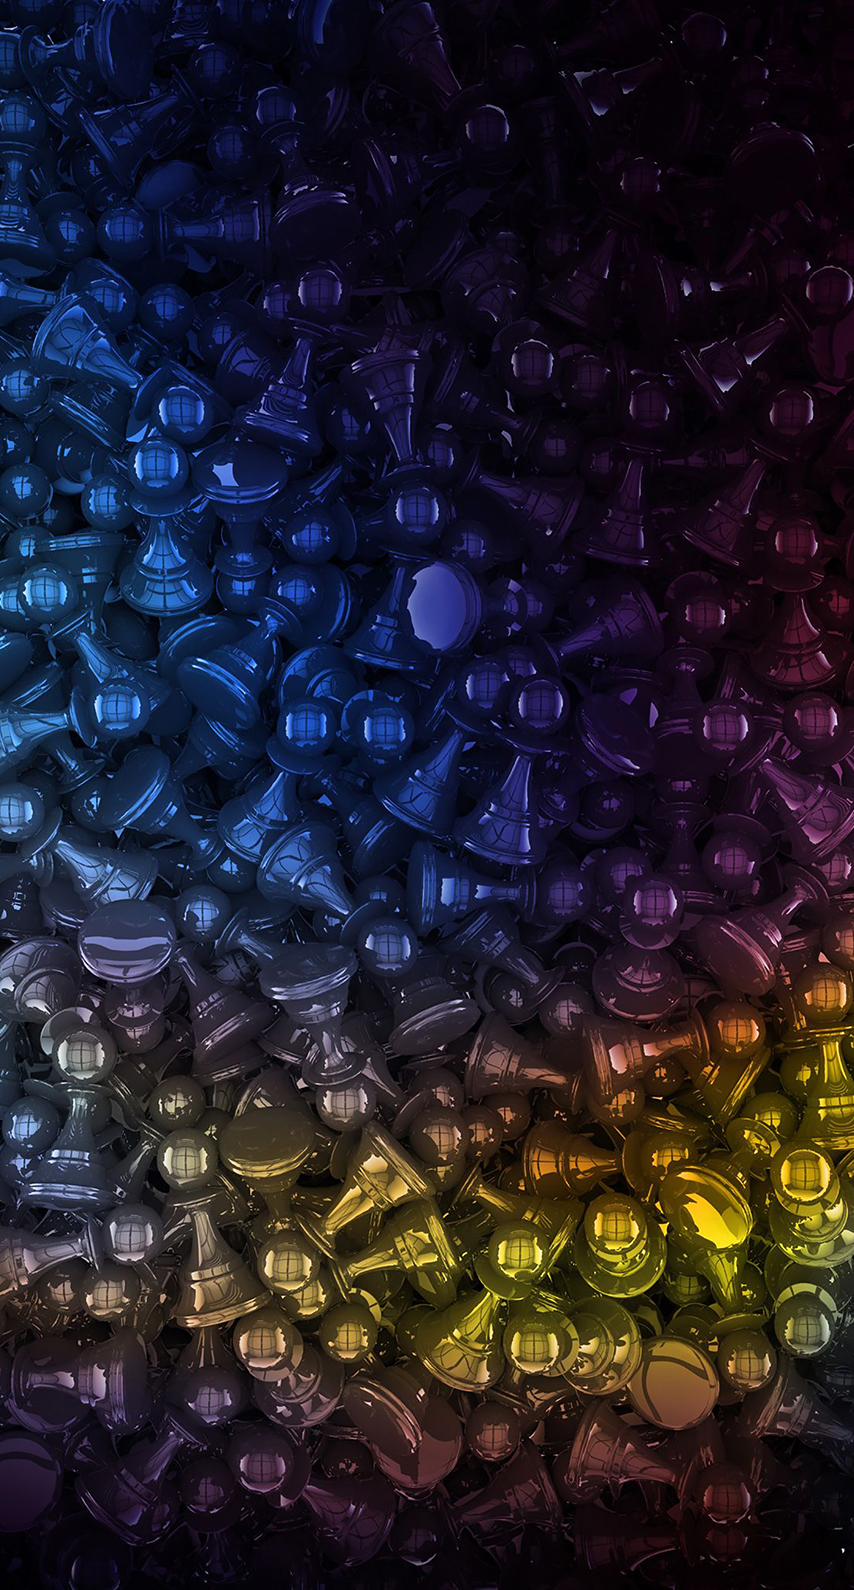 background, insubstantial, wallpaper, desktop, shape, no person, shining, decoration, color, closeup, wet